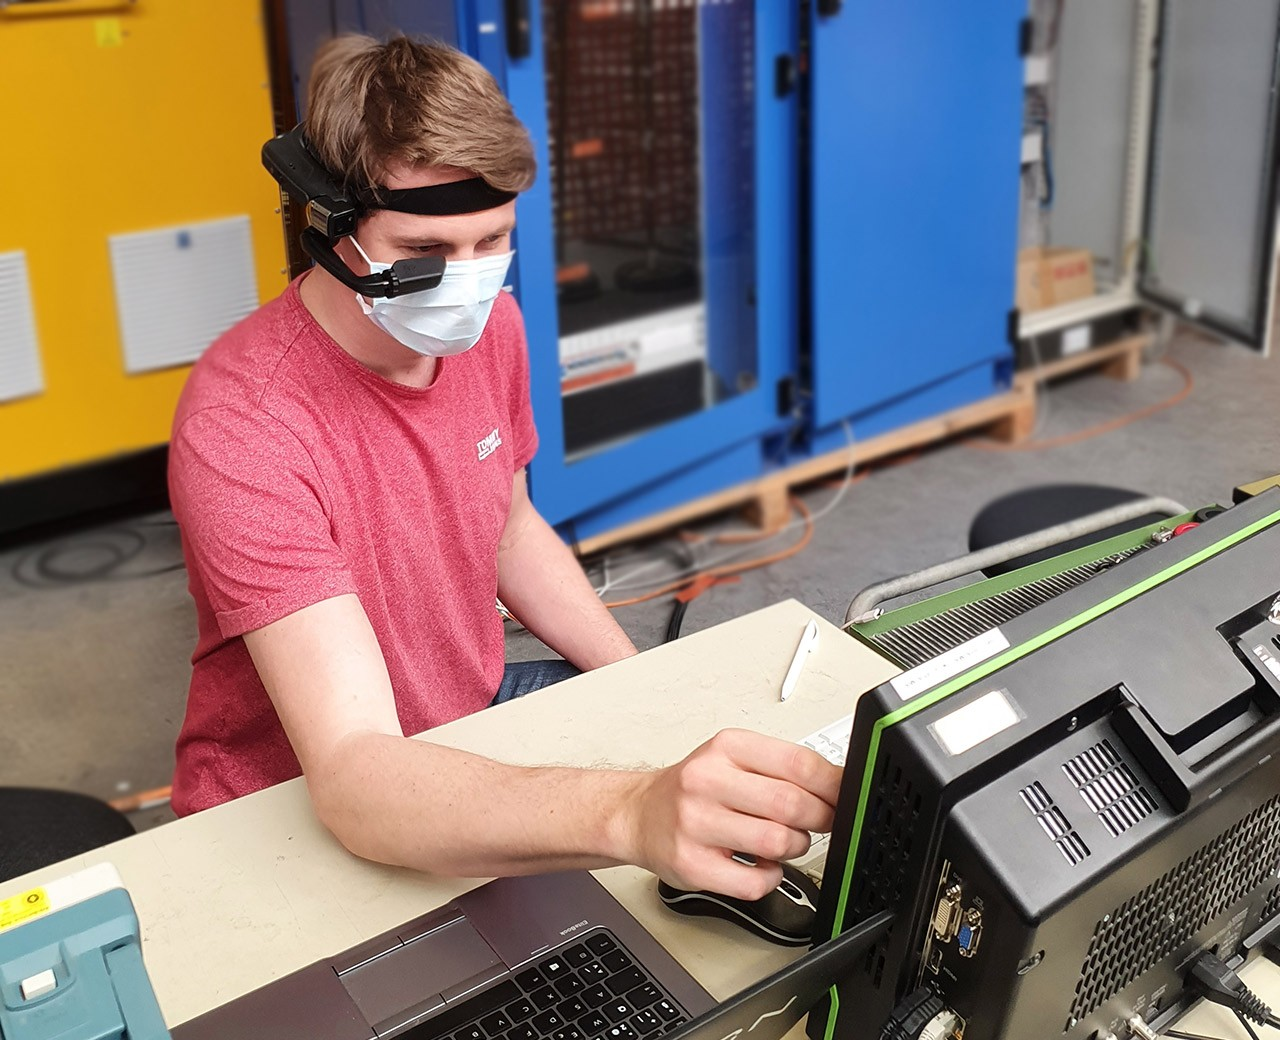 Ampegon system engineer, Simon Scheiben, performing a Factory Acceptance Test with the F4E smartglasses.